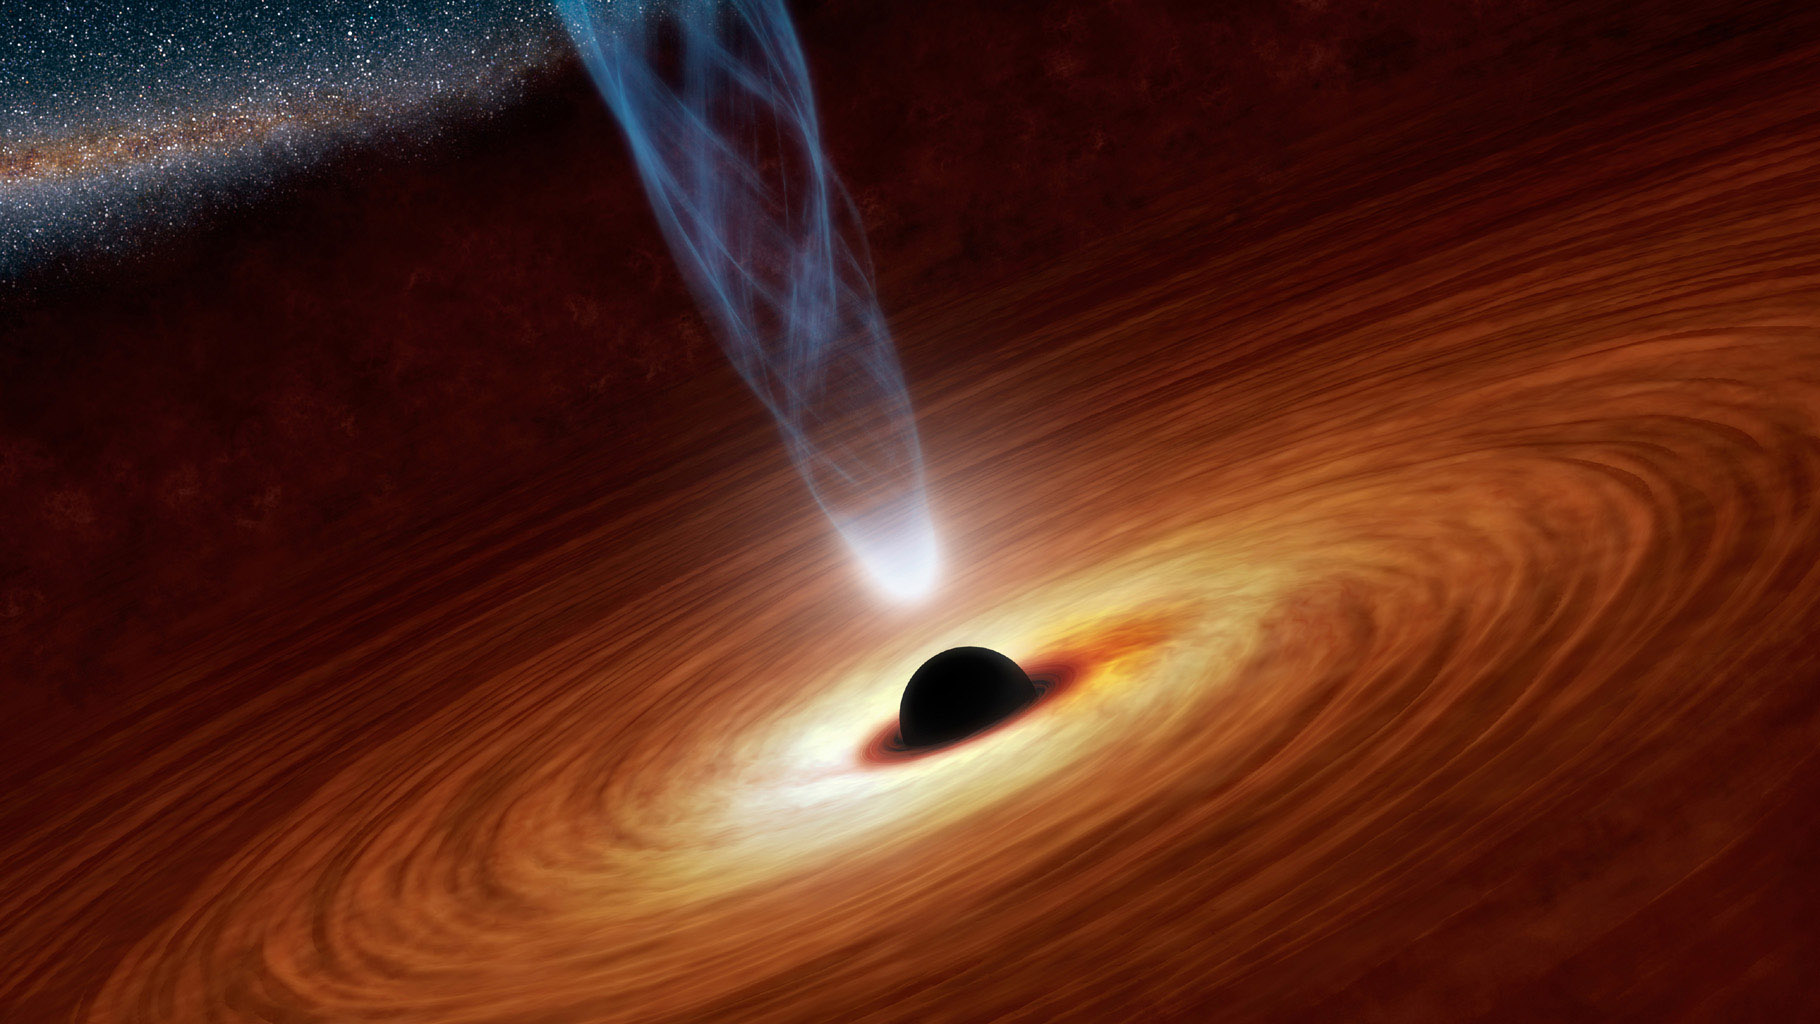 This artist's concept illustrates a supermassive black hole with millions to billions times the mass of our sun. Supermassive black holes are enormously dense objects buried at the hearts of galaxies.